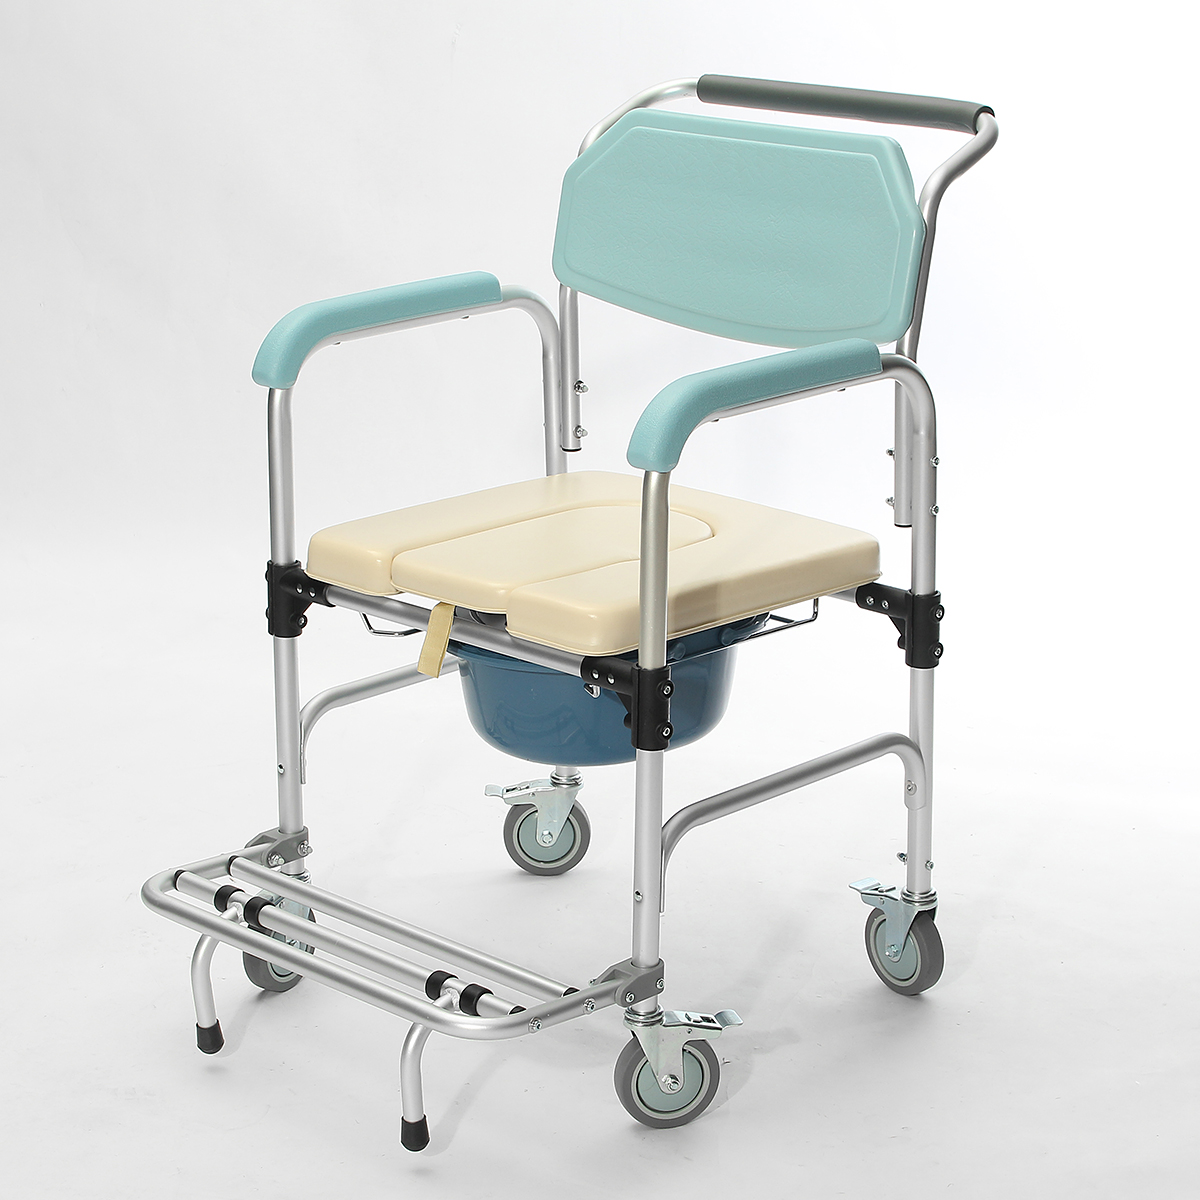 Bedside Commode Chair 3 In 1 Commode Wheelchair Bedside Toilet And Shower Seat